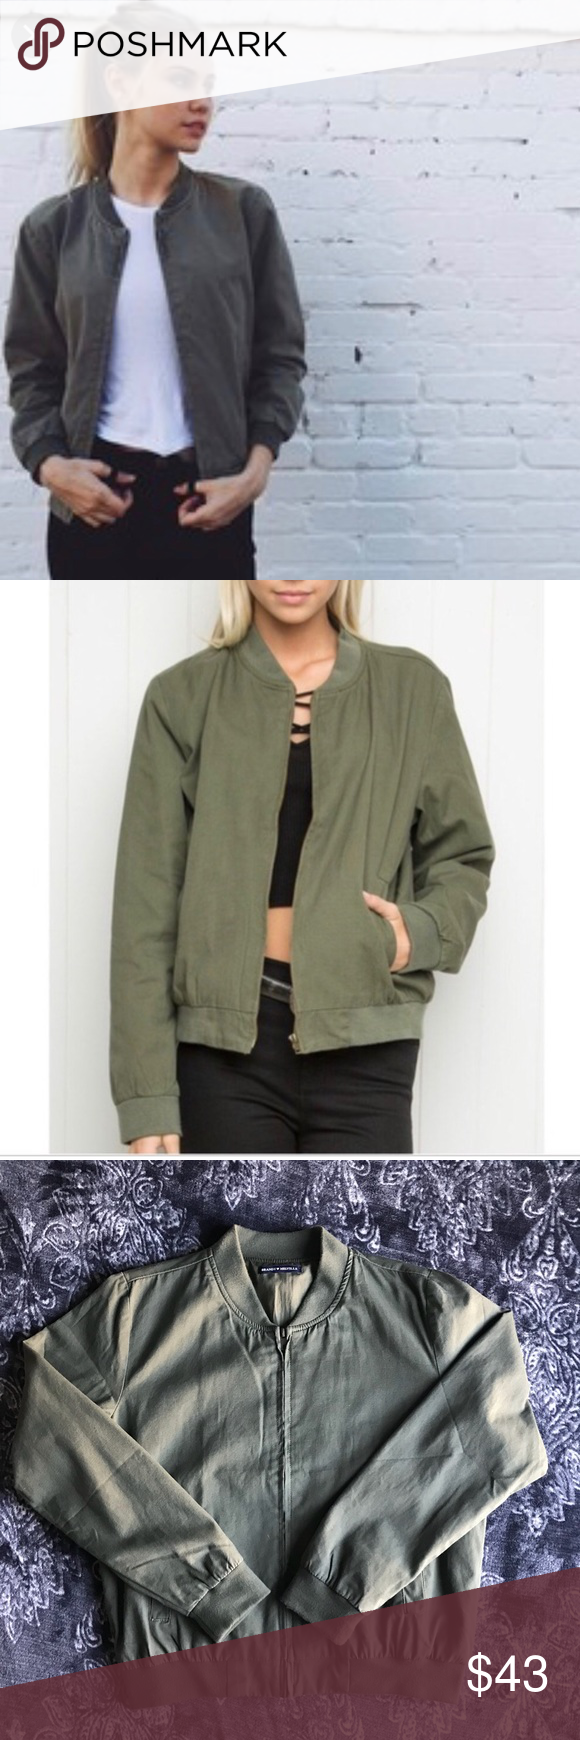 Rote jacke brandy melville